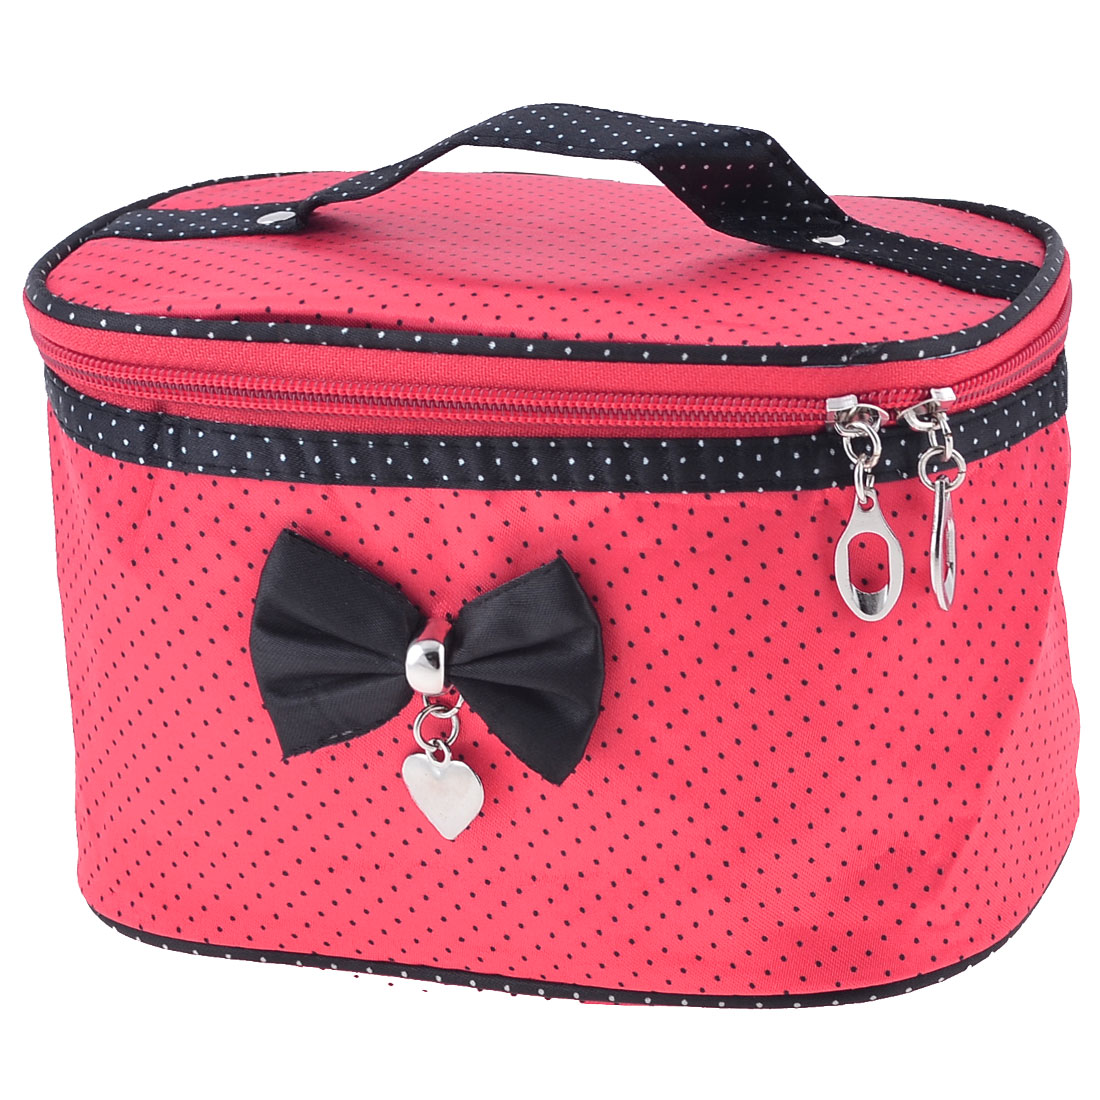 Women Dots Print Bowknot Detailing Travel Black Red Cosmetic Bag